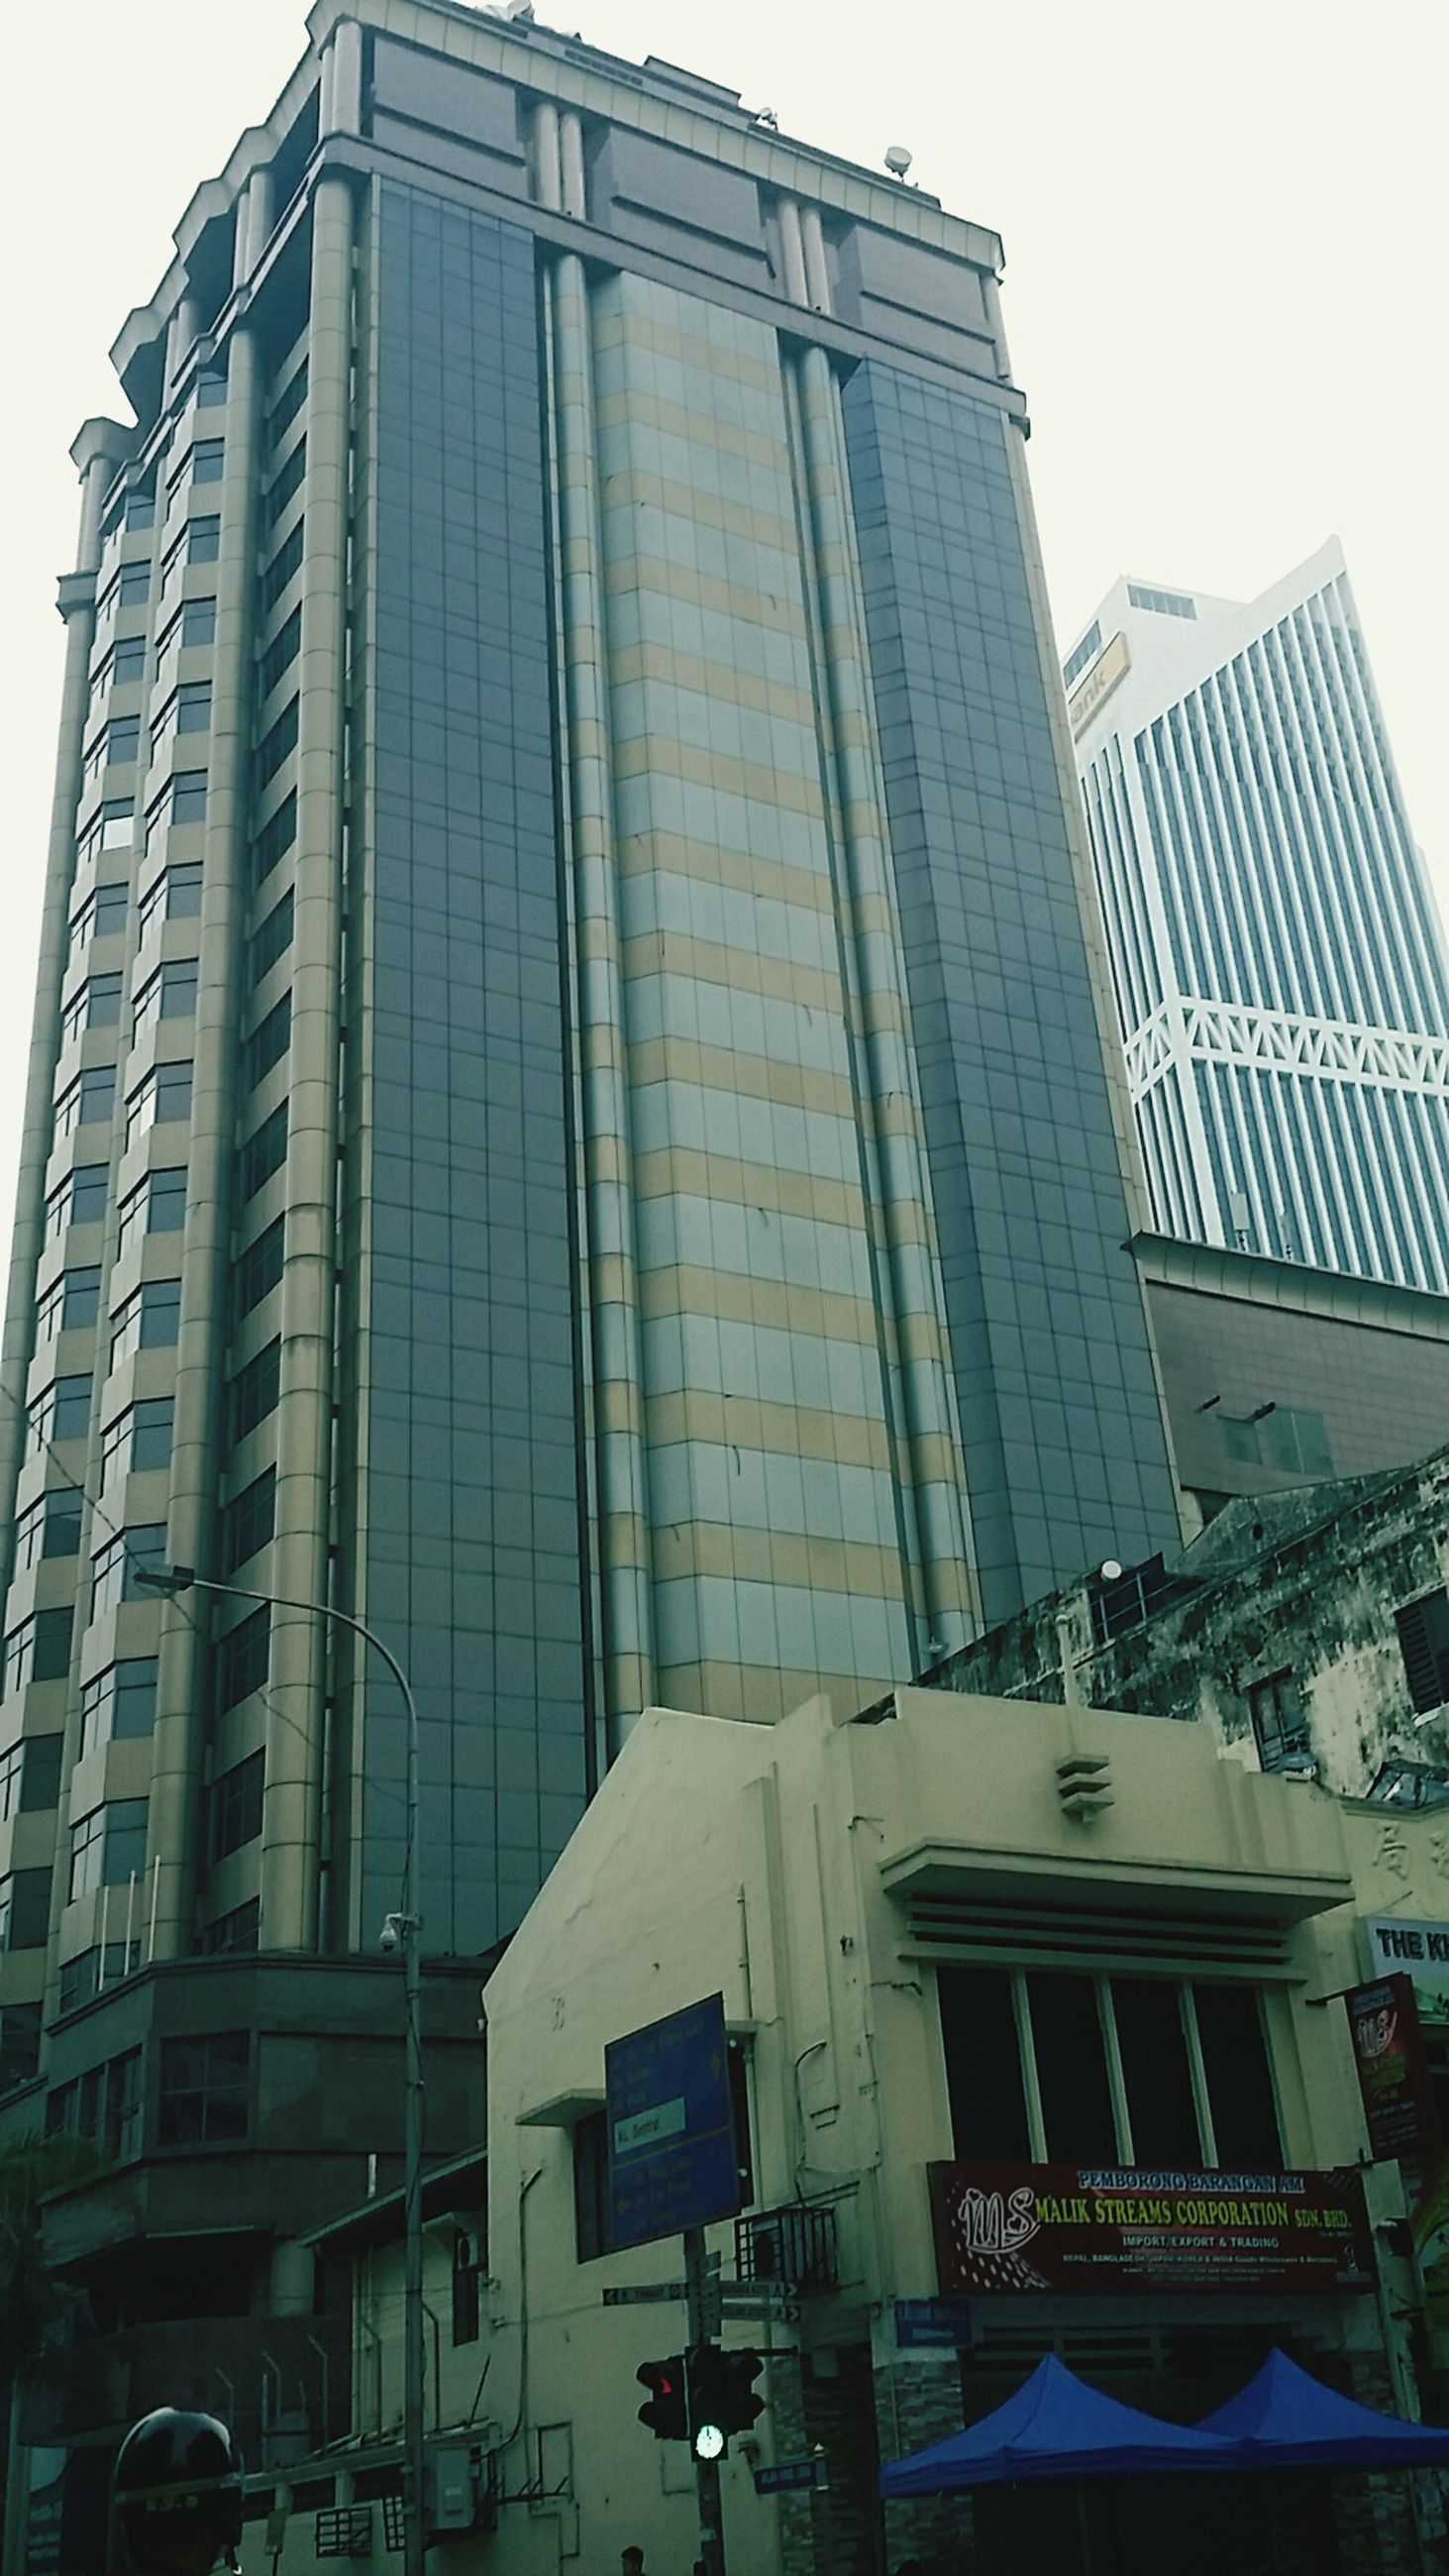 building exterior, architecture, built structure, low angle view, city, office building, building, modern, skyscraper, tall - high, window, glass - material, tower, sky, clear sky, residential building, day, outdoors, city life, no people